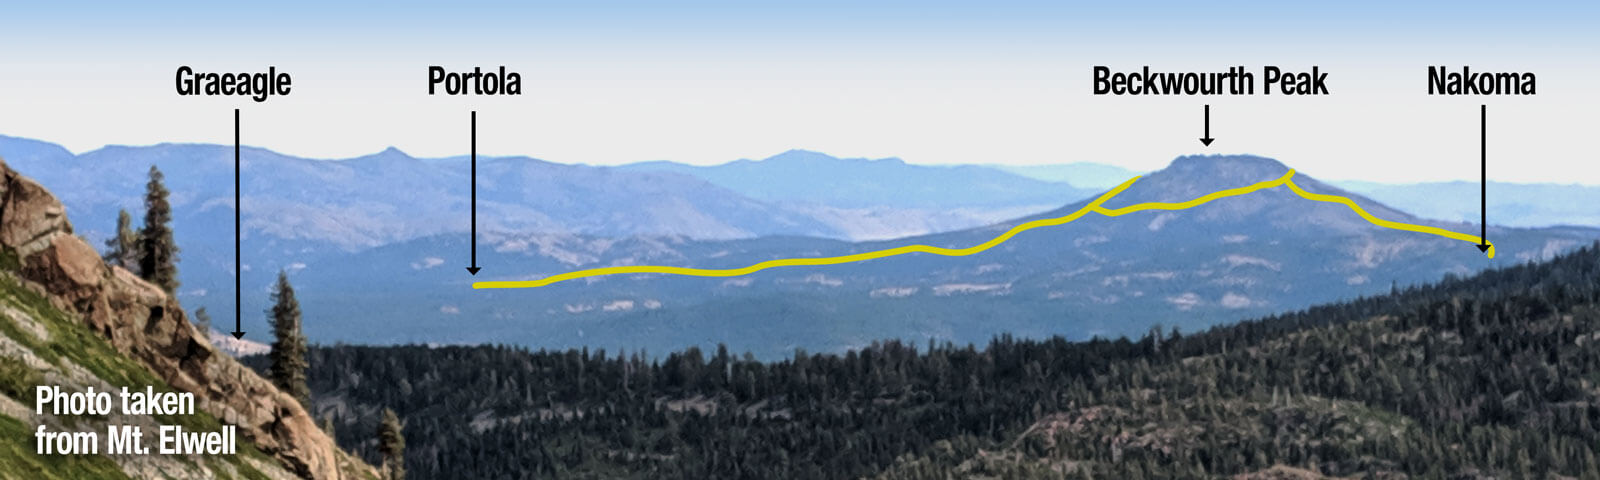 Beckwourth Peak Trail diagram on photo of Beckwourth Peak